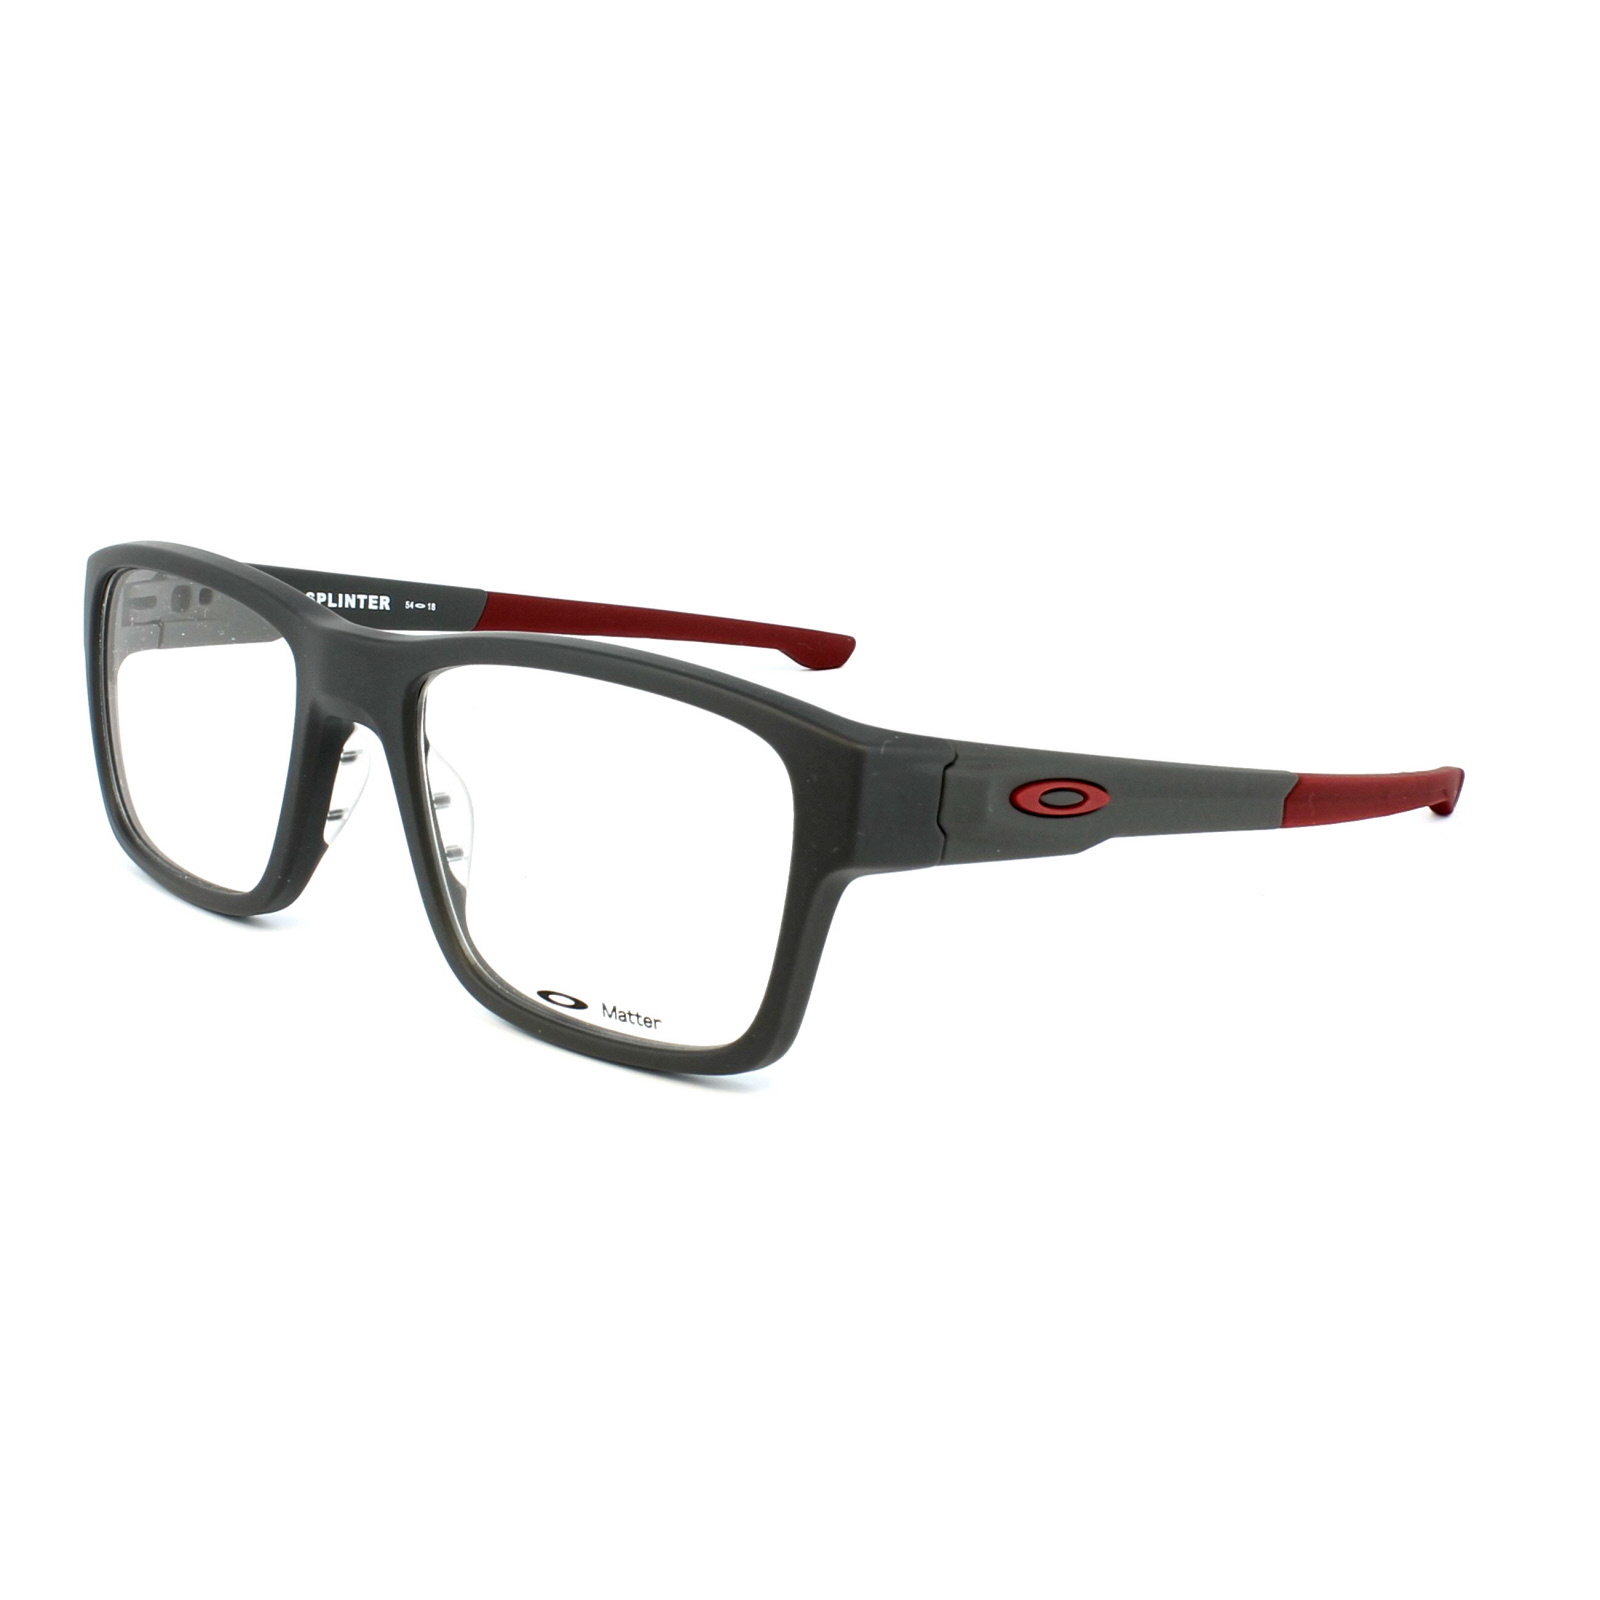 red oakley goggles  Cheap Oakley Splinter Glasses Frames - Discounted Sunglasses